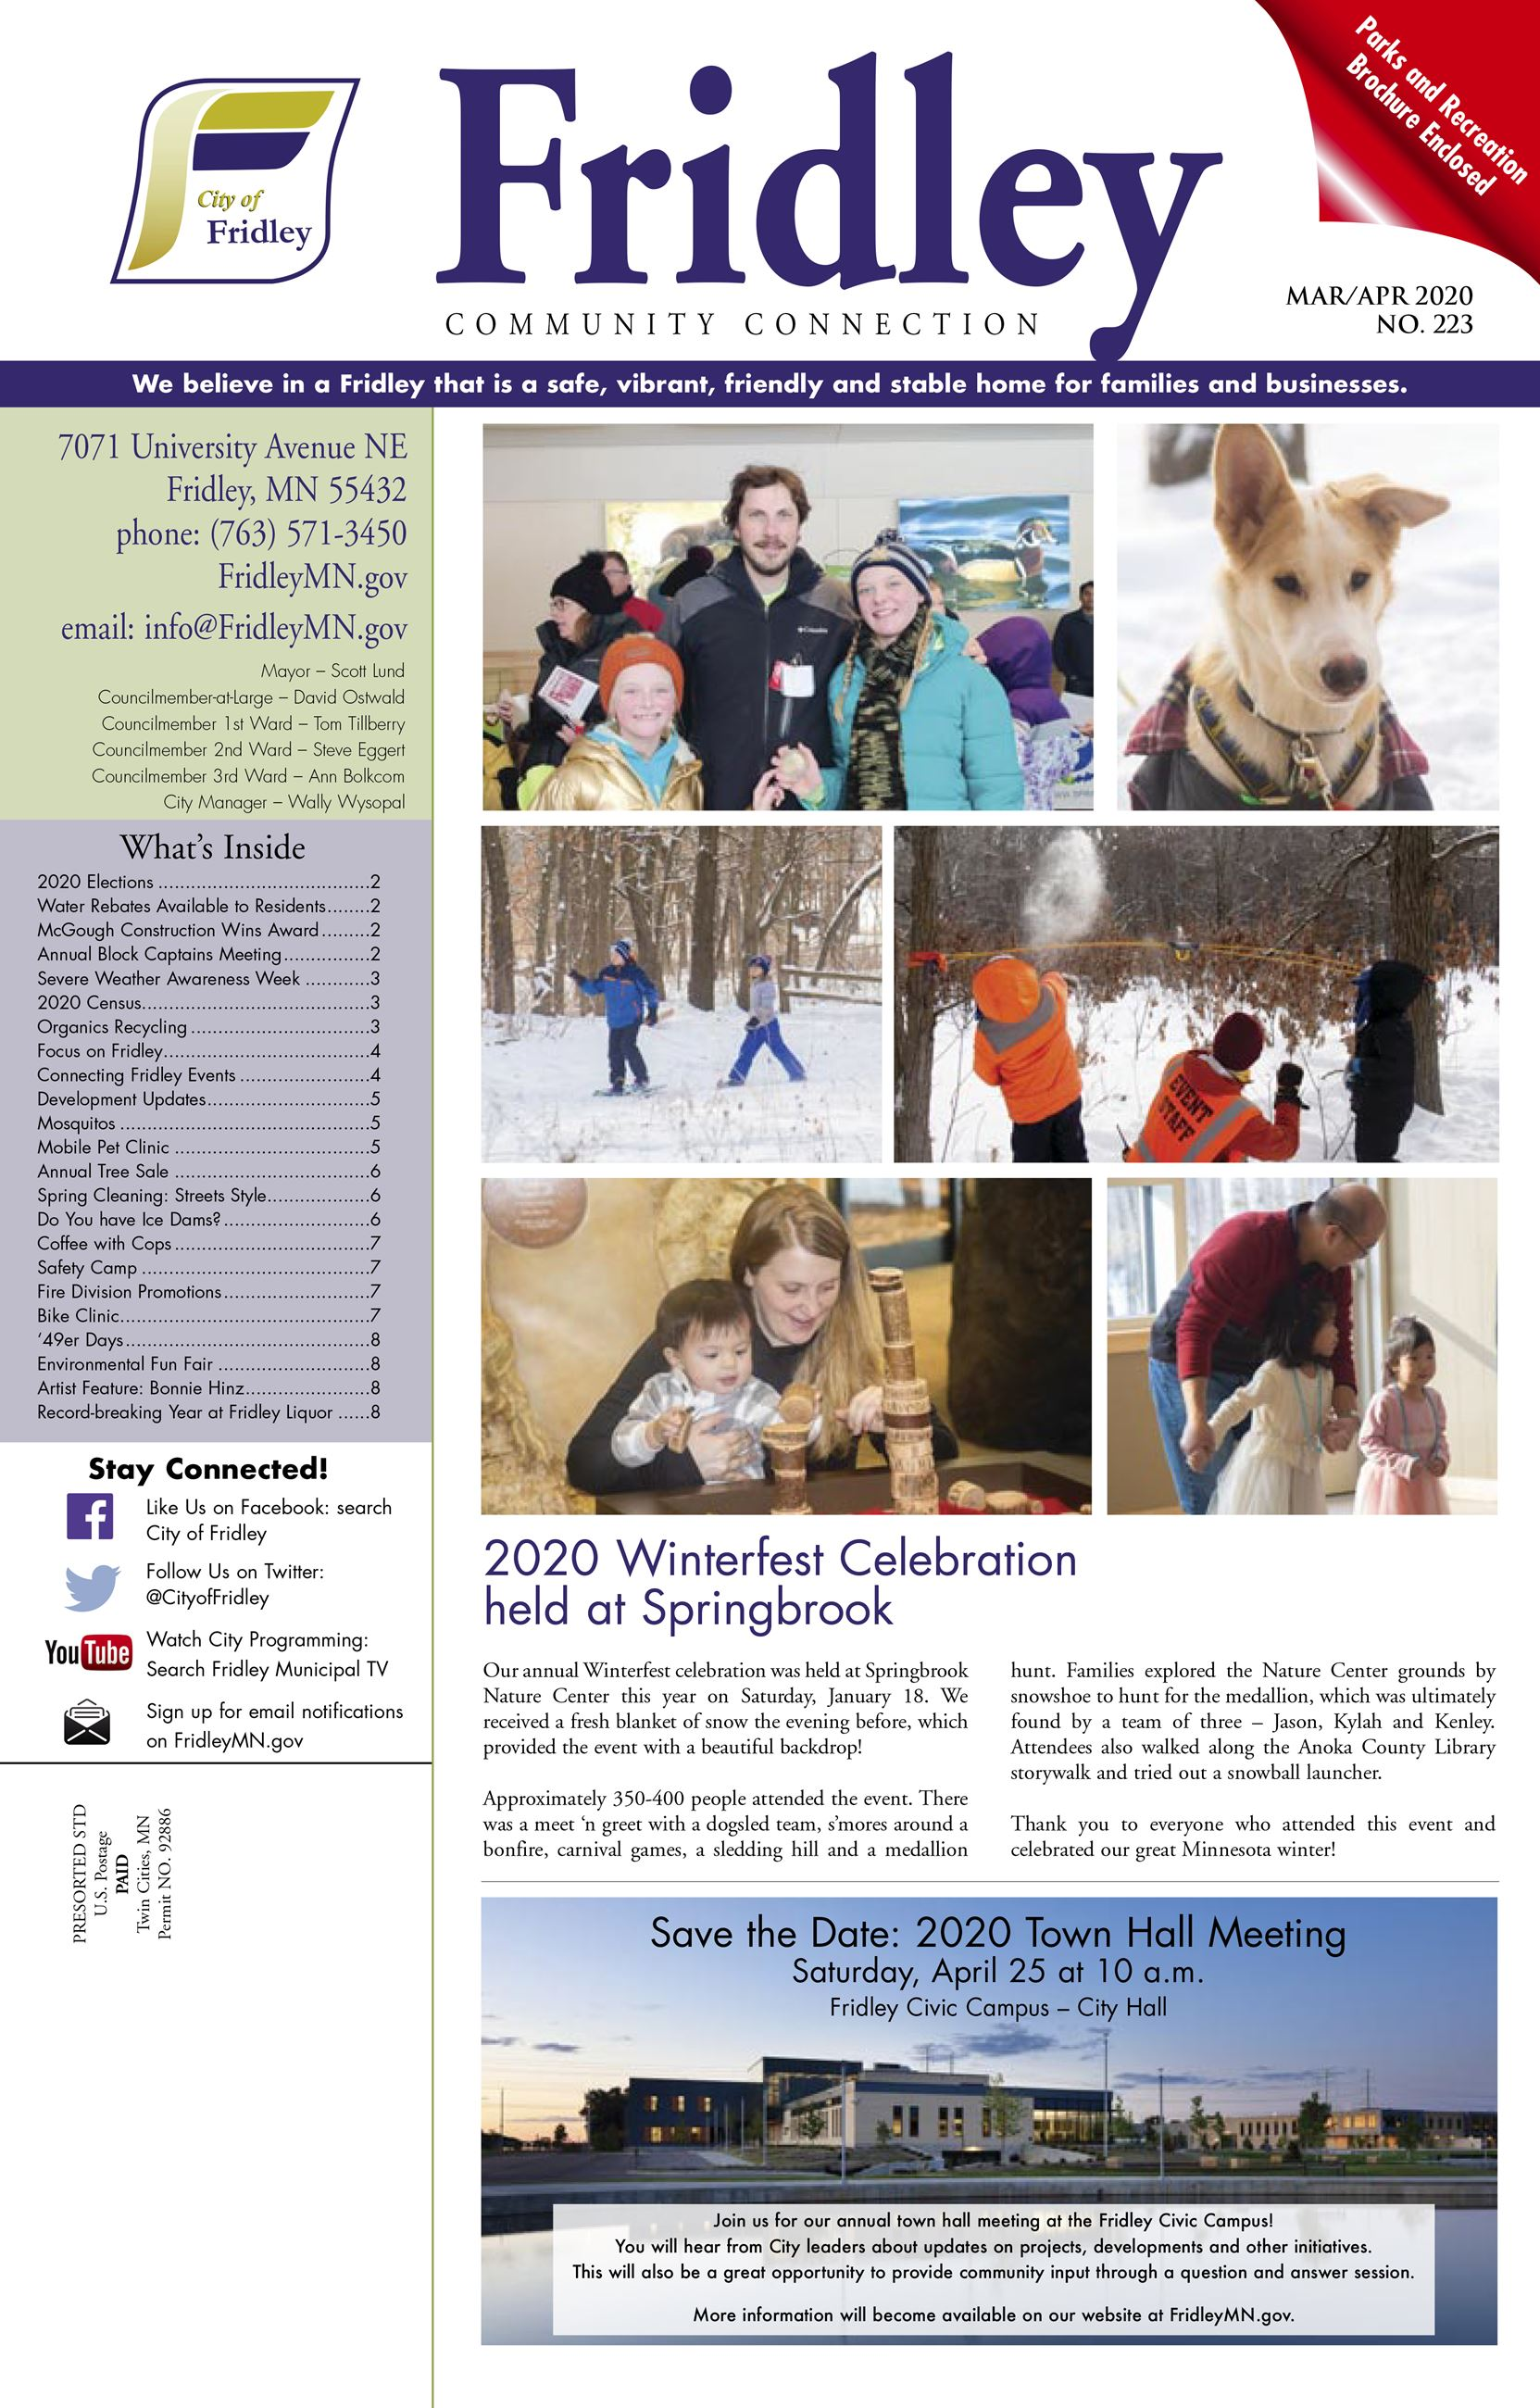 Cover of March April newsletter